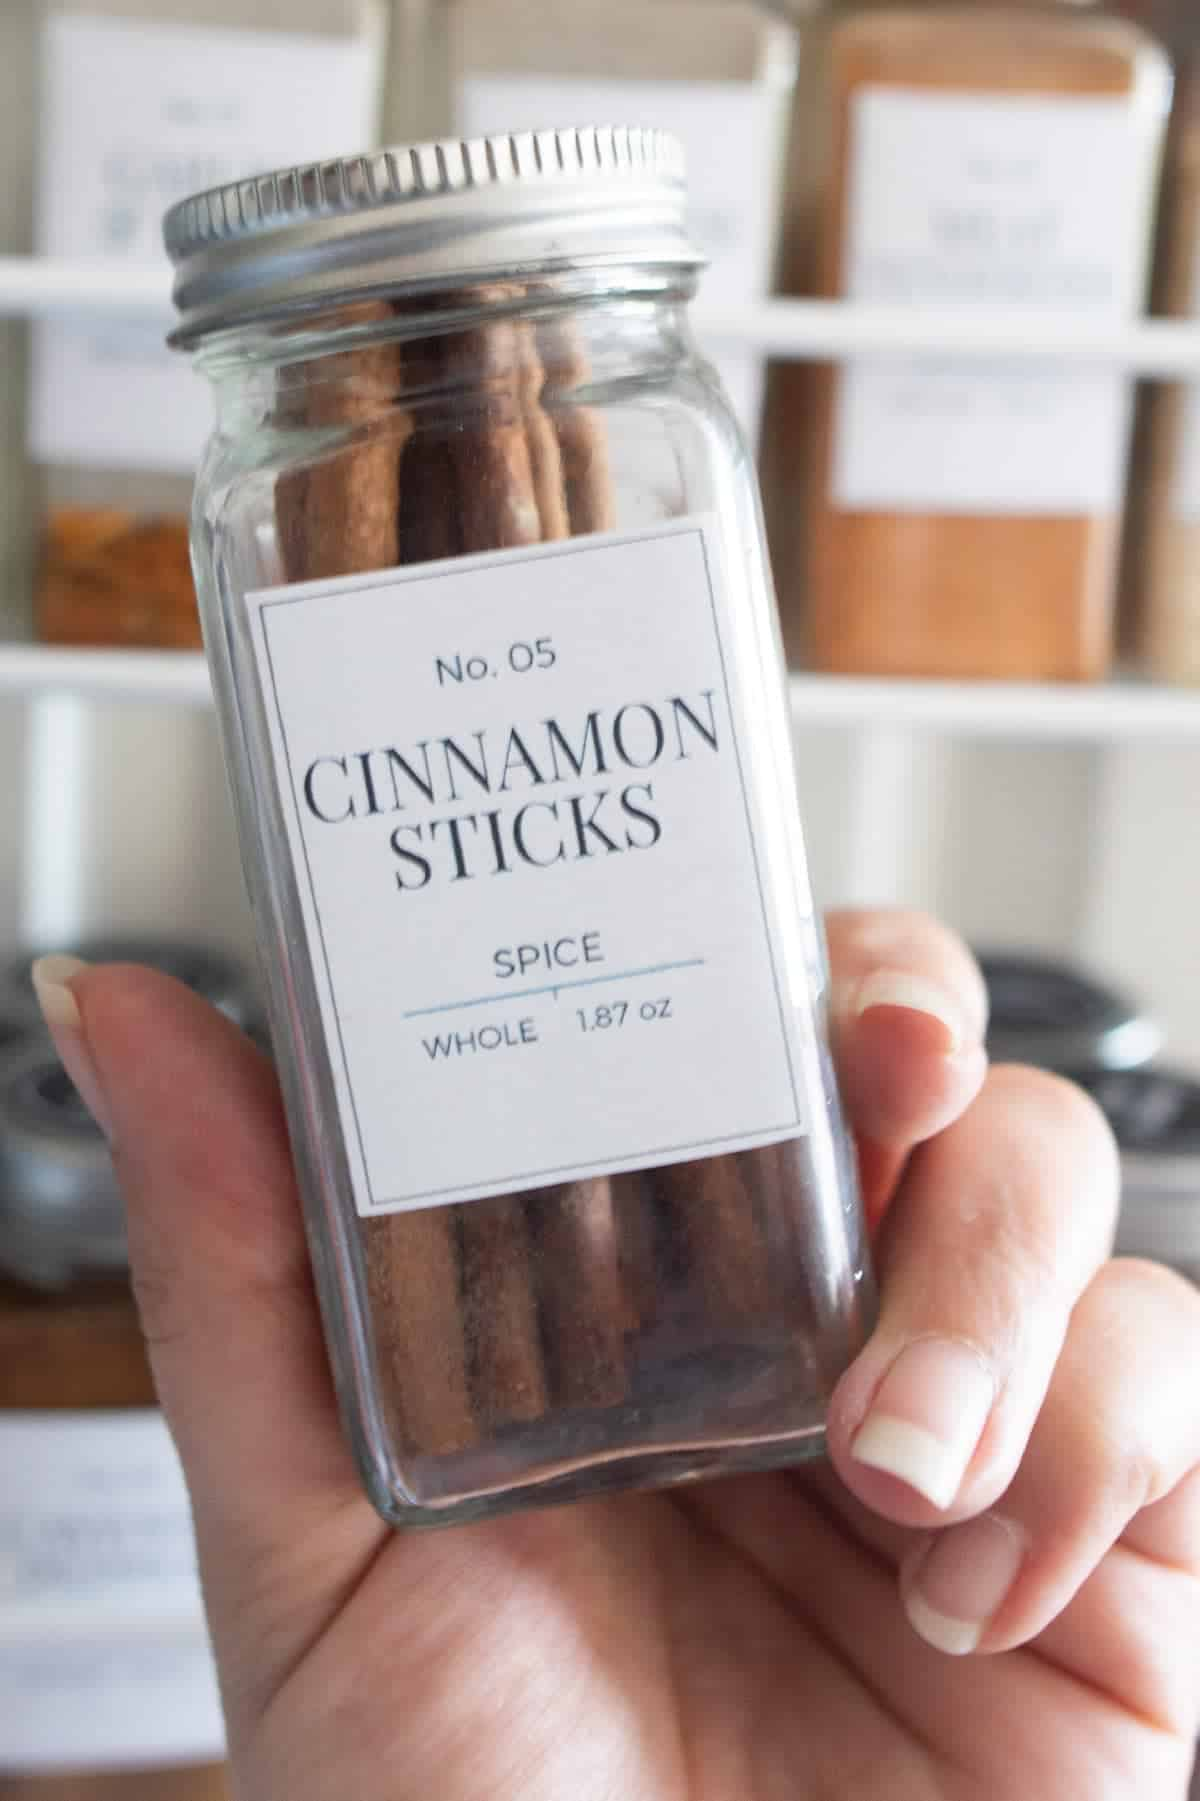 Cinnamon sticks label on clear glass spice jar filled with cinnamon sticks.